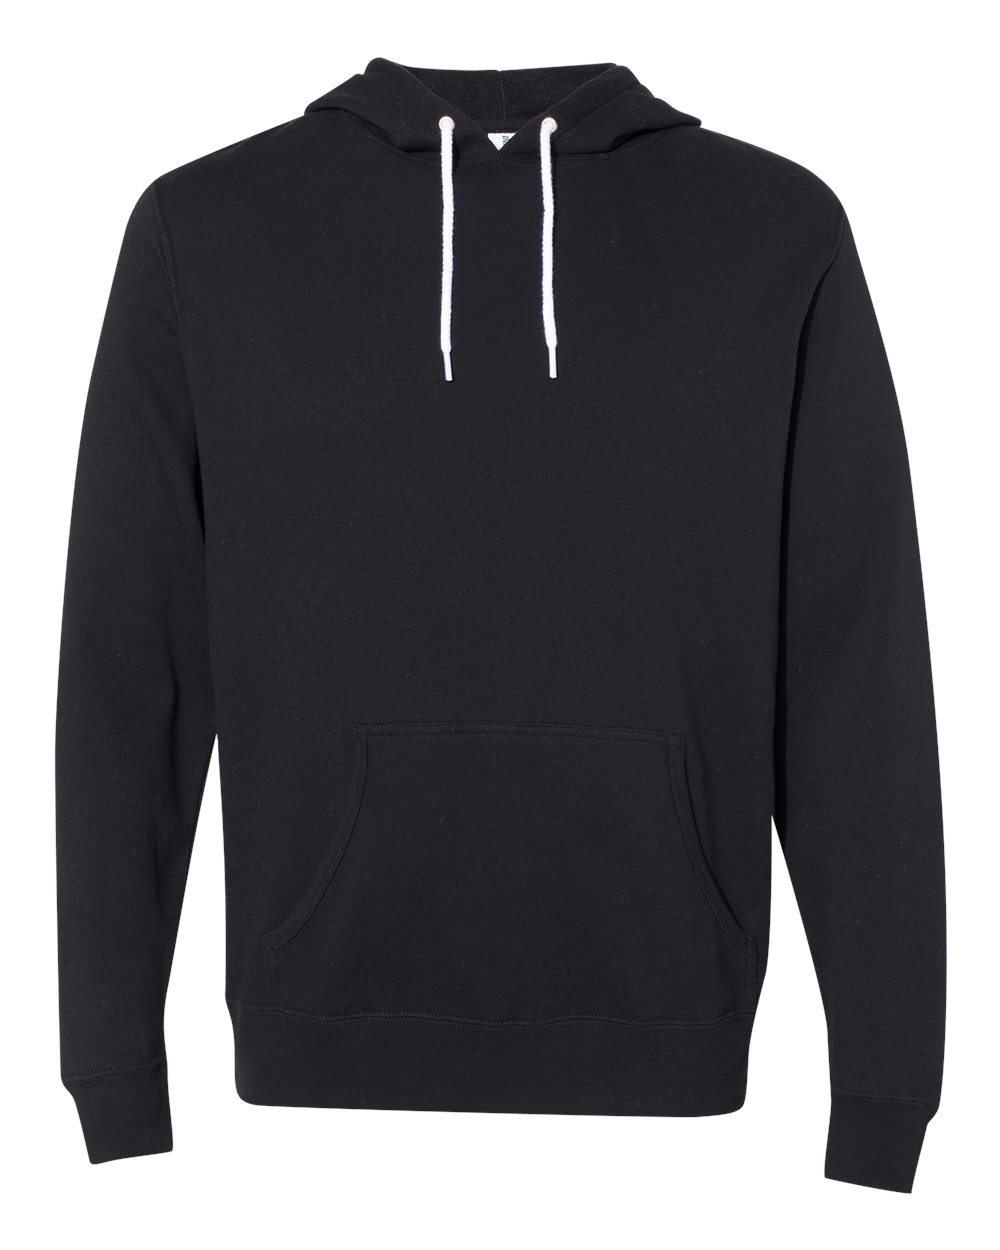 Independent-Trading-Co-Unisex-Hooded-Pullover-Blank-Plain-AFX90UN-up-to-3XL thumbnail 6